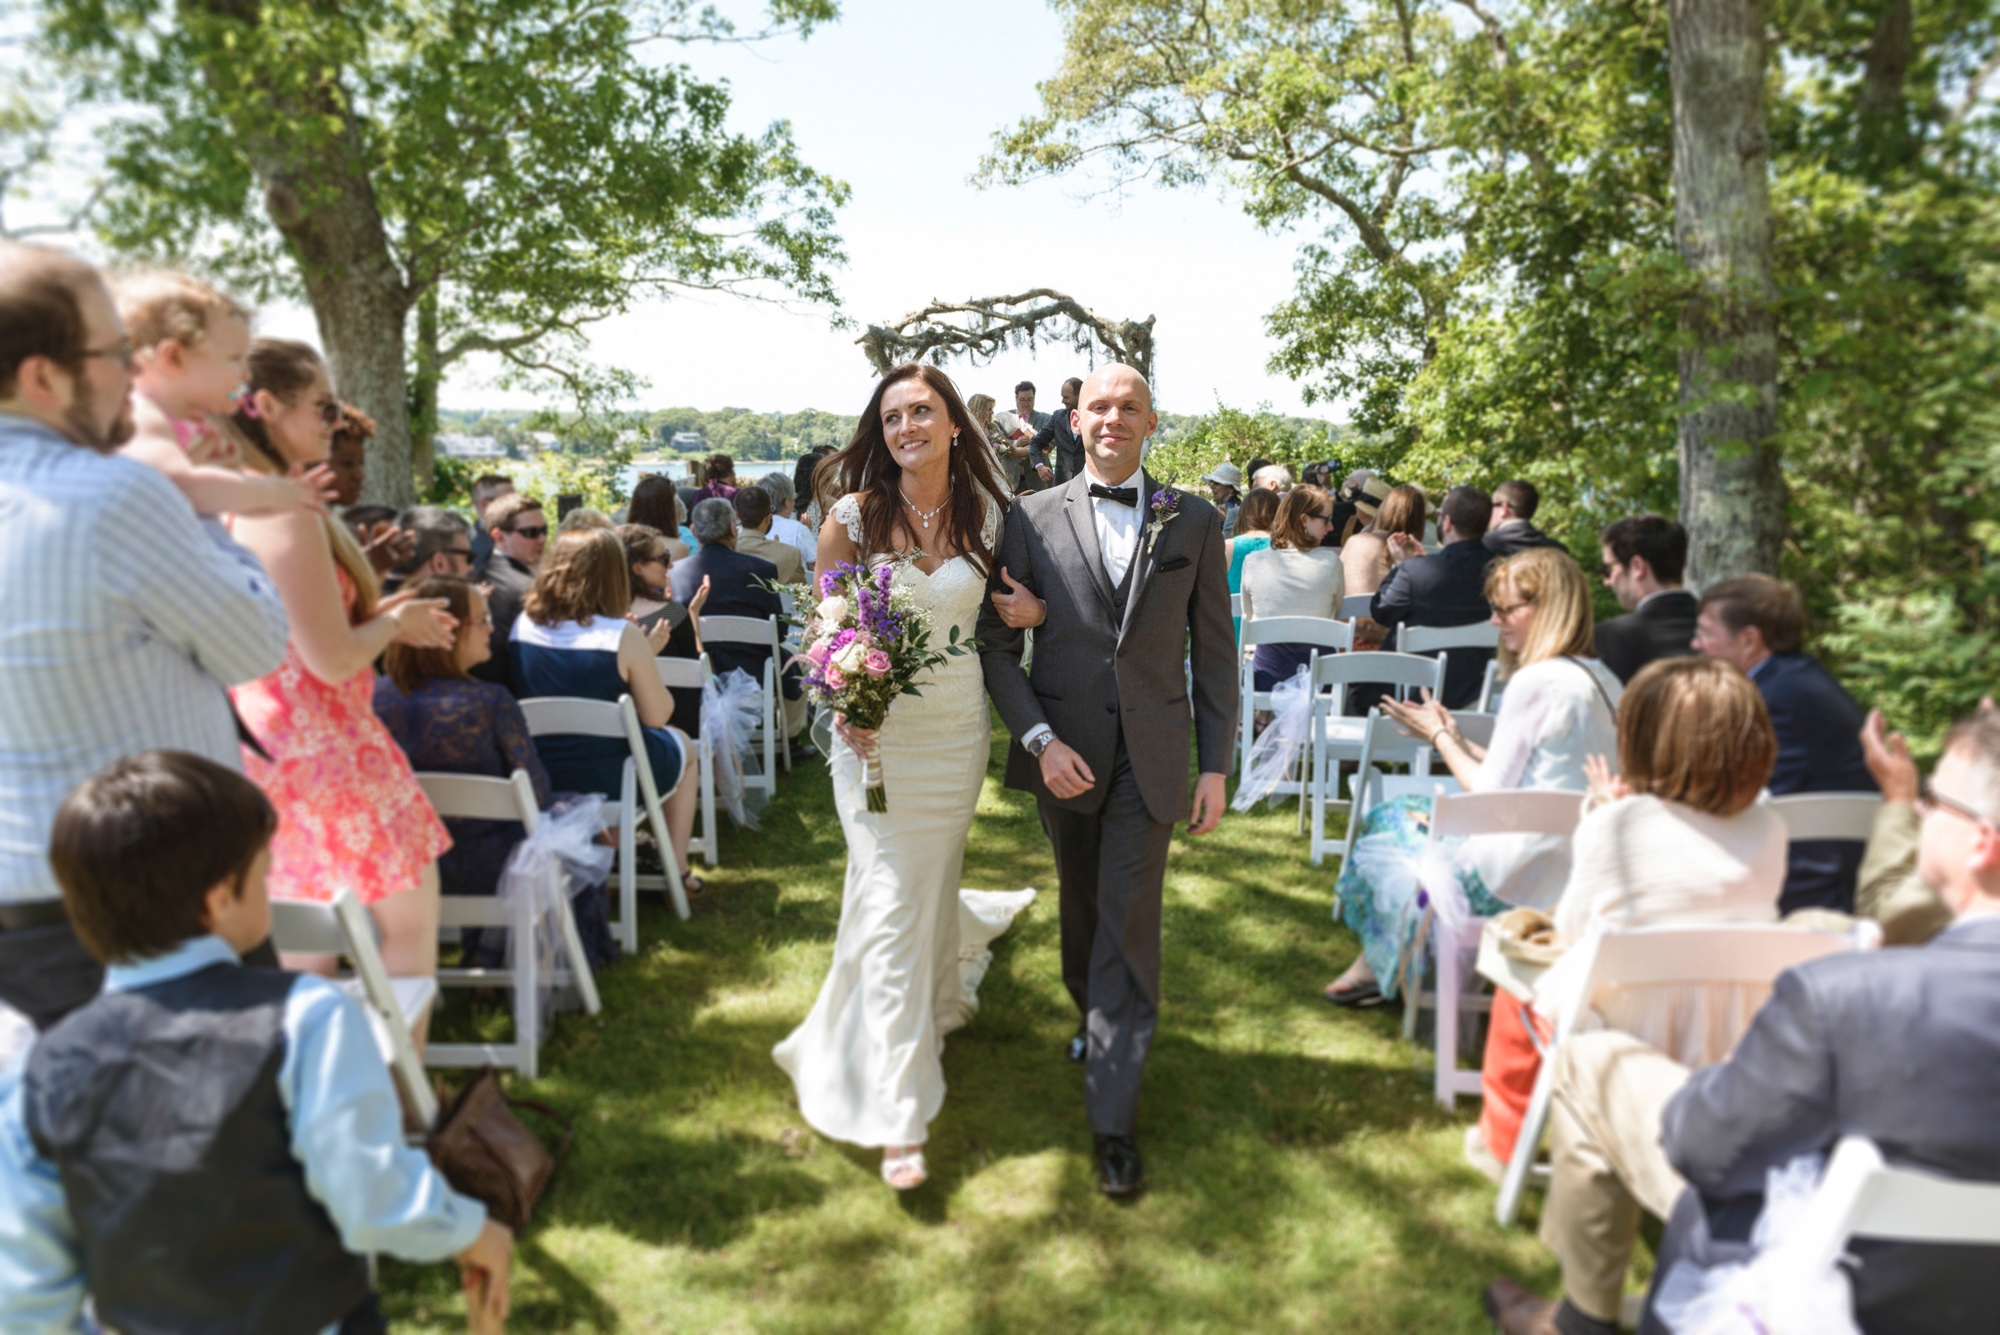 Newlyweds exit their wedding ceremony at the Sailing Camp Park in Oak Bluffs photo by David Welch Photography